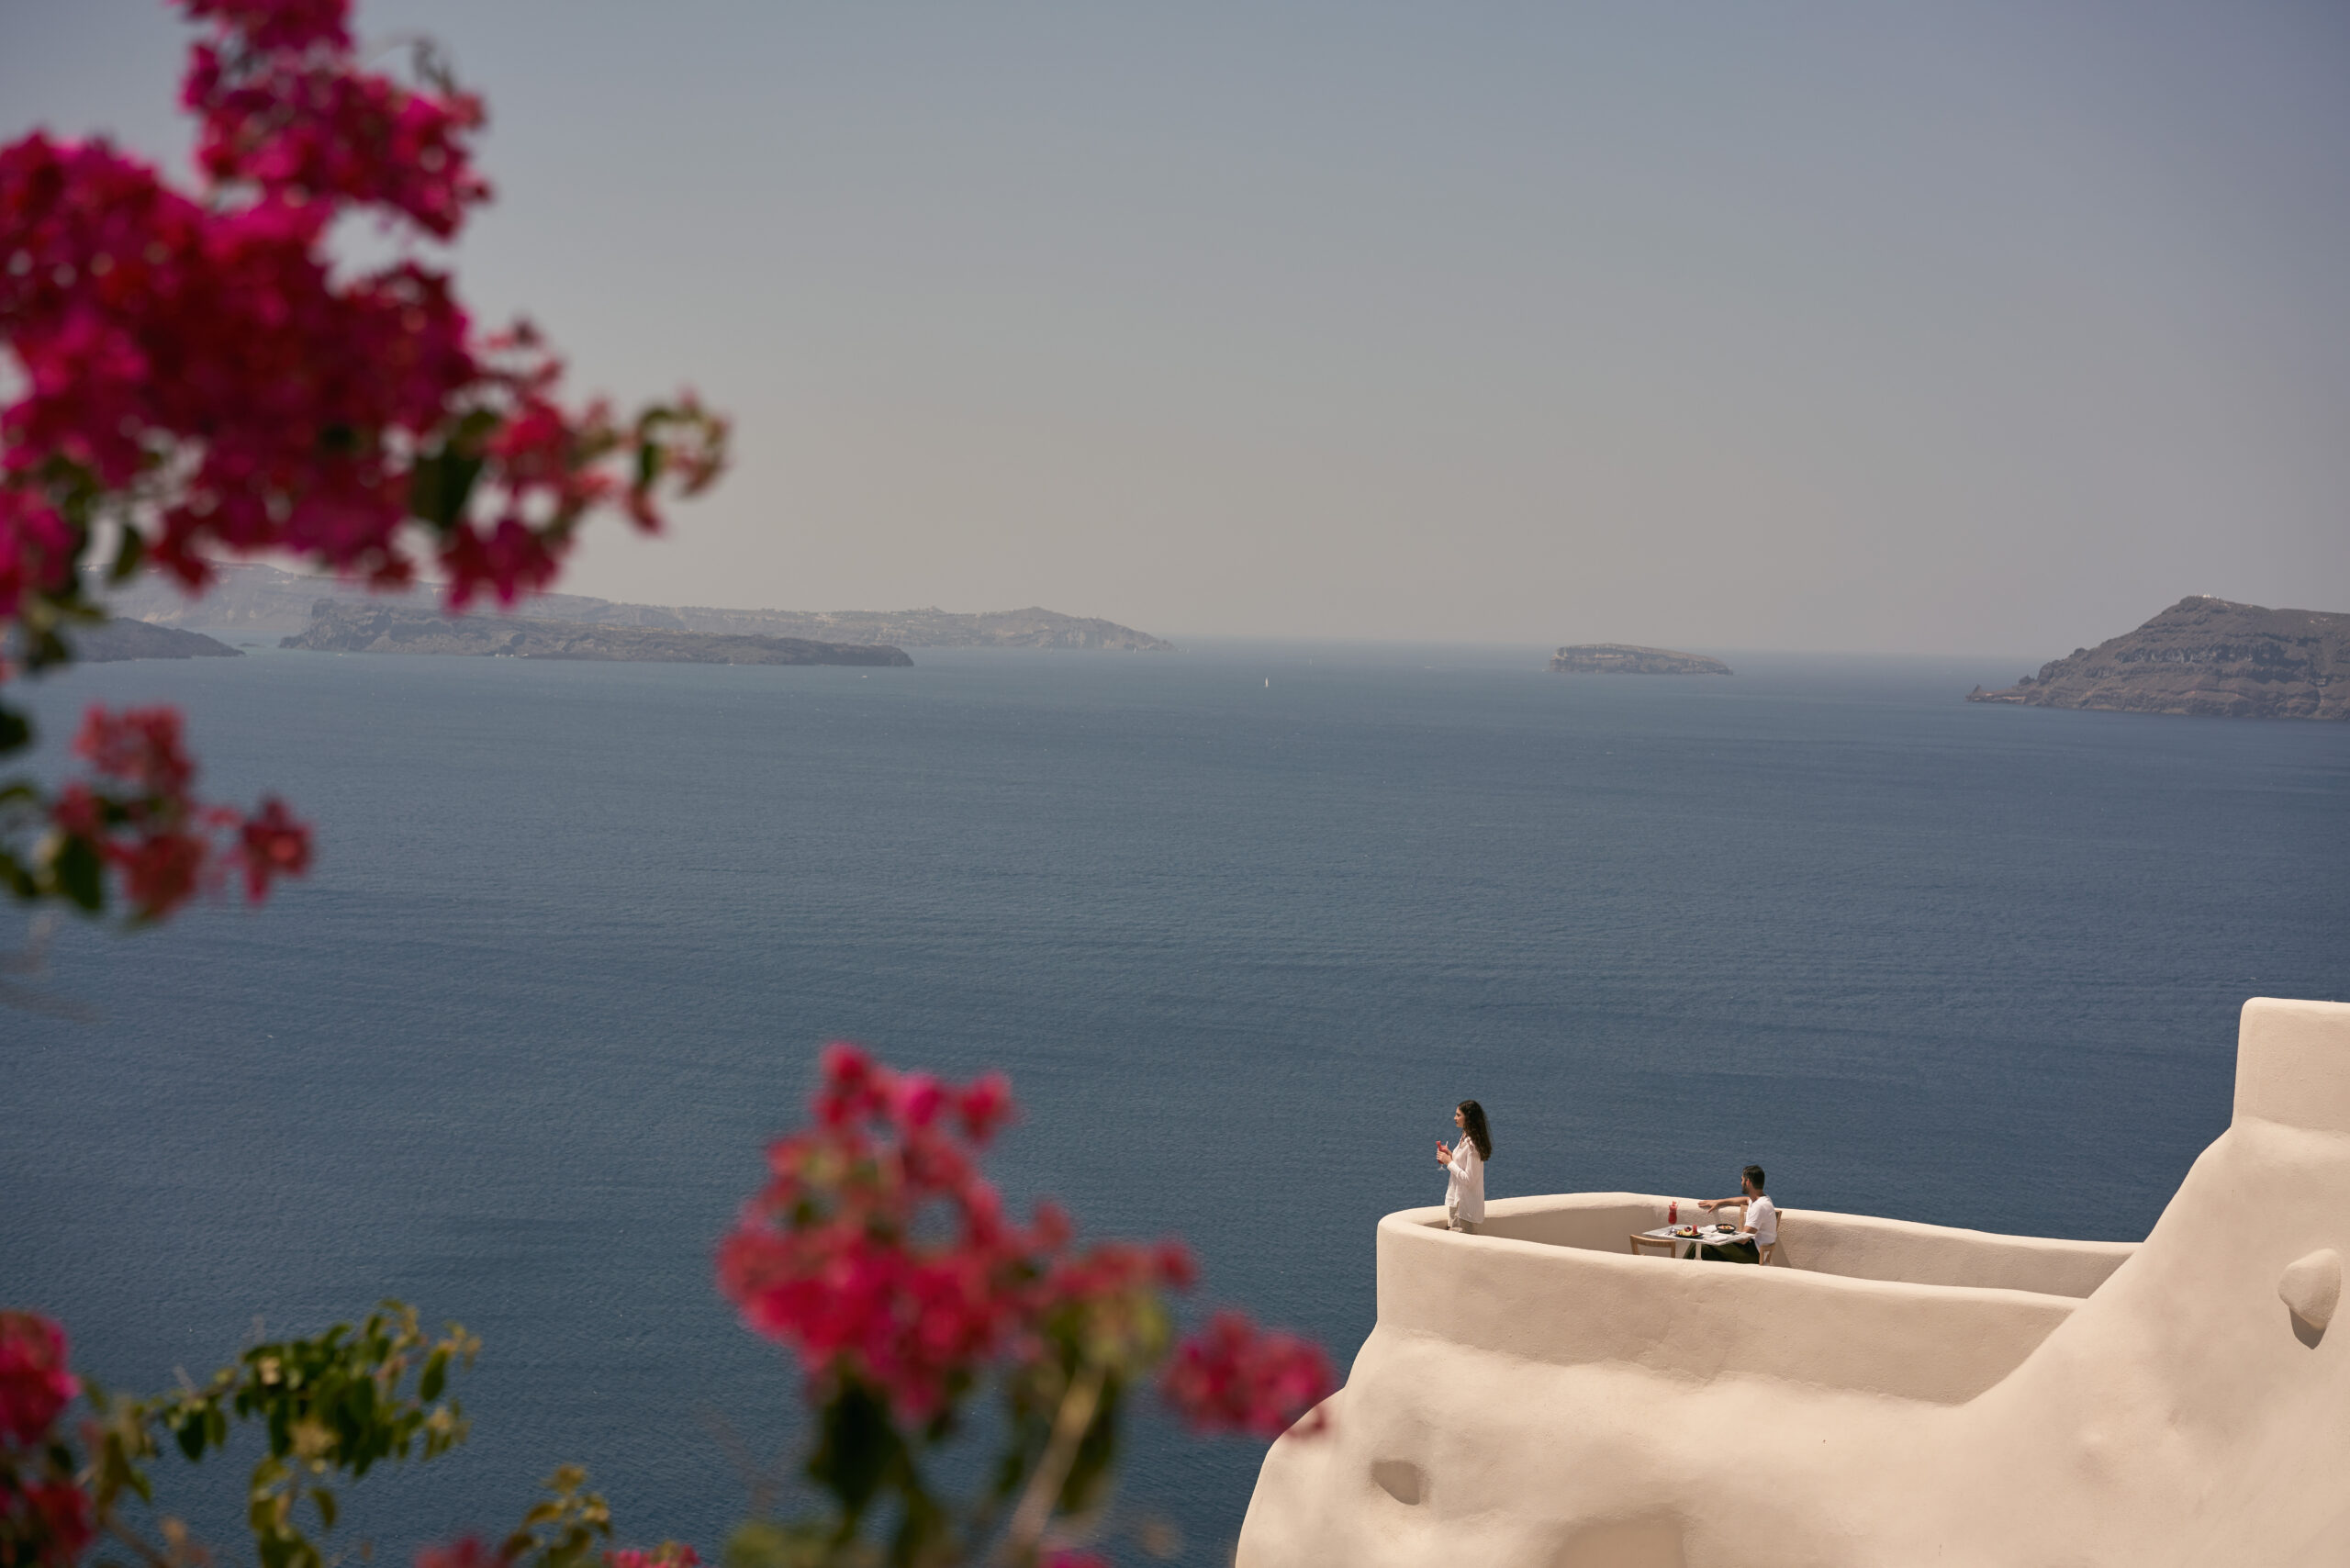 Stunning view from Mystique hotel in Oia